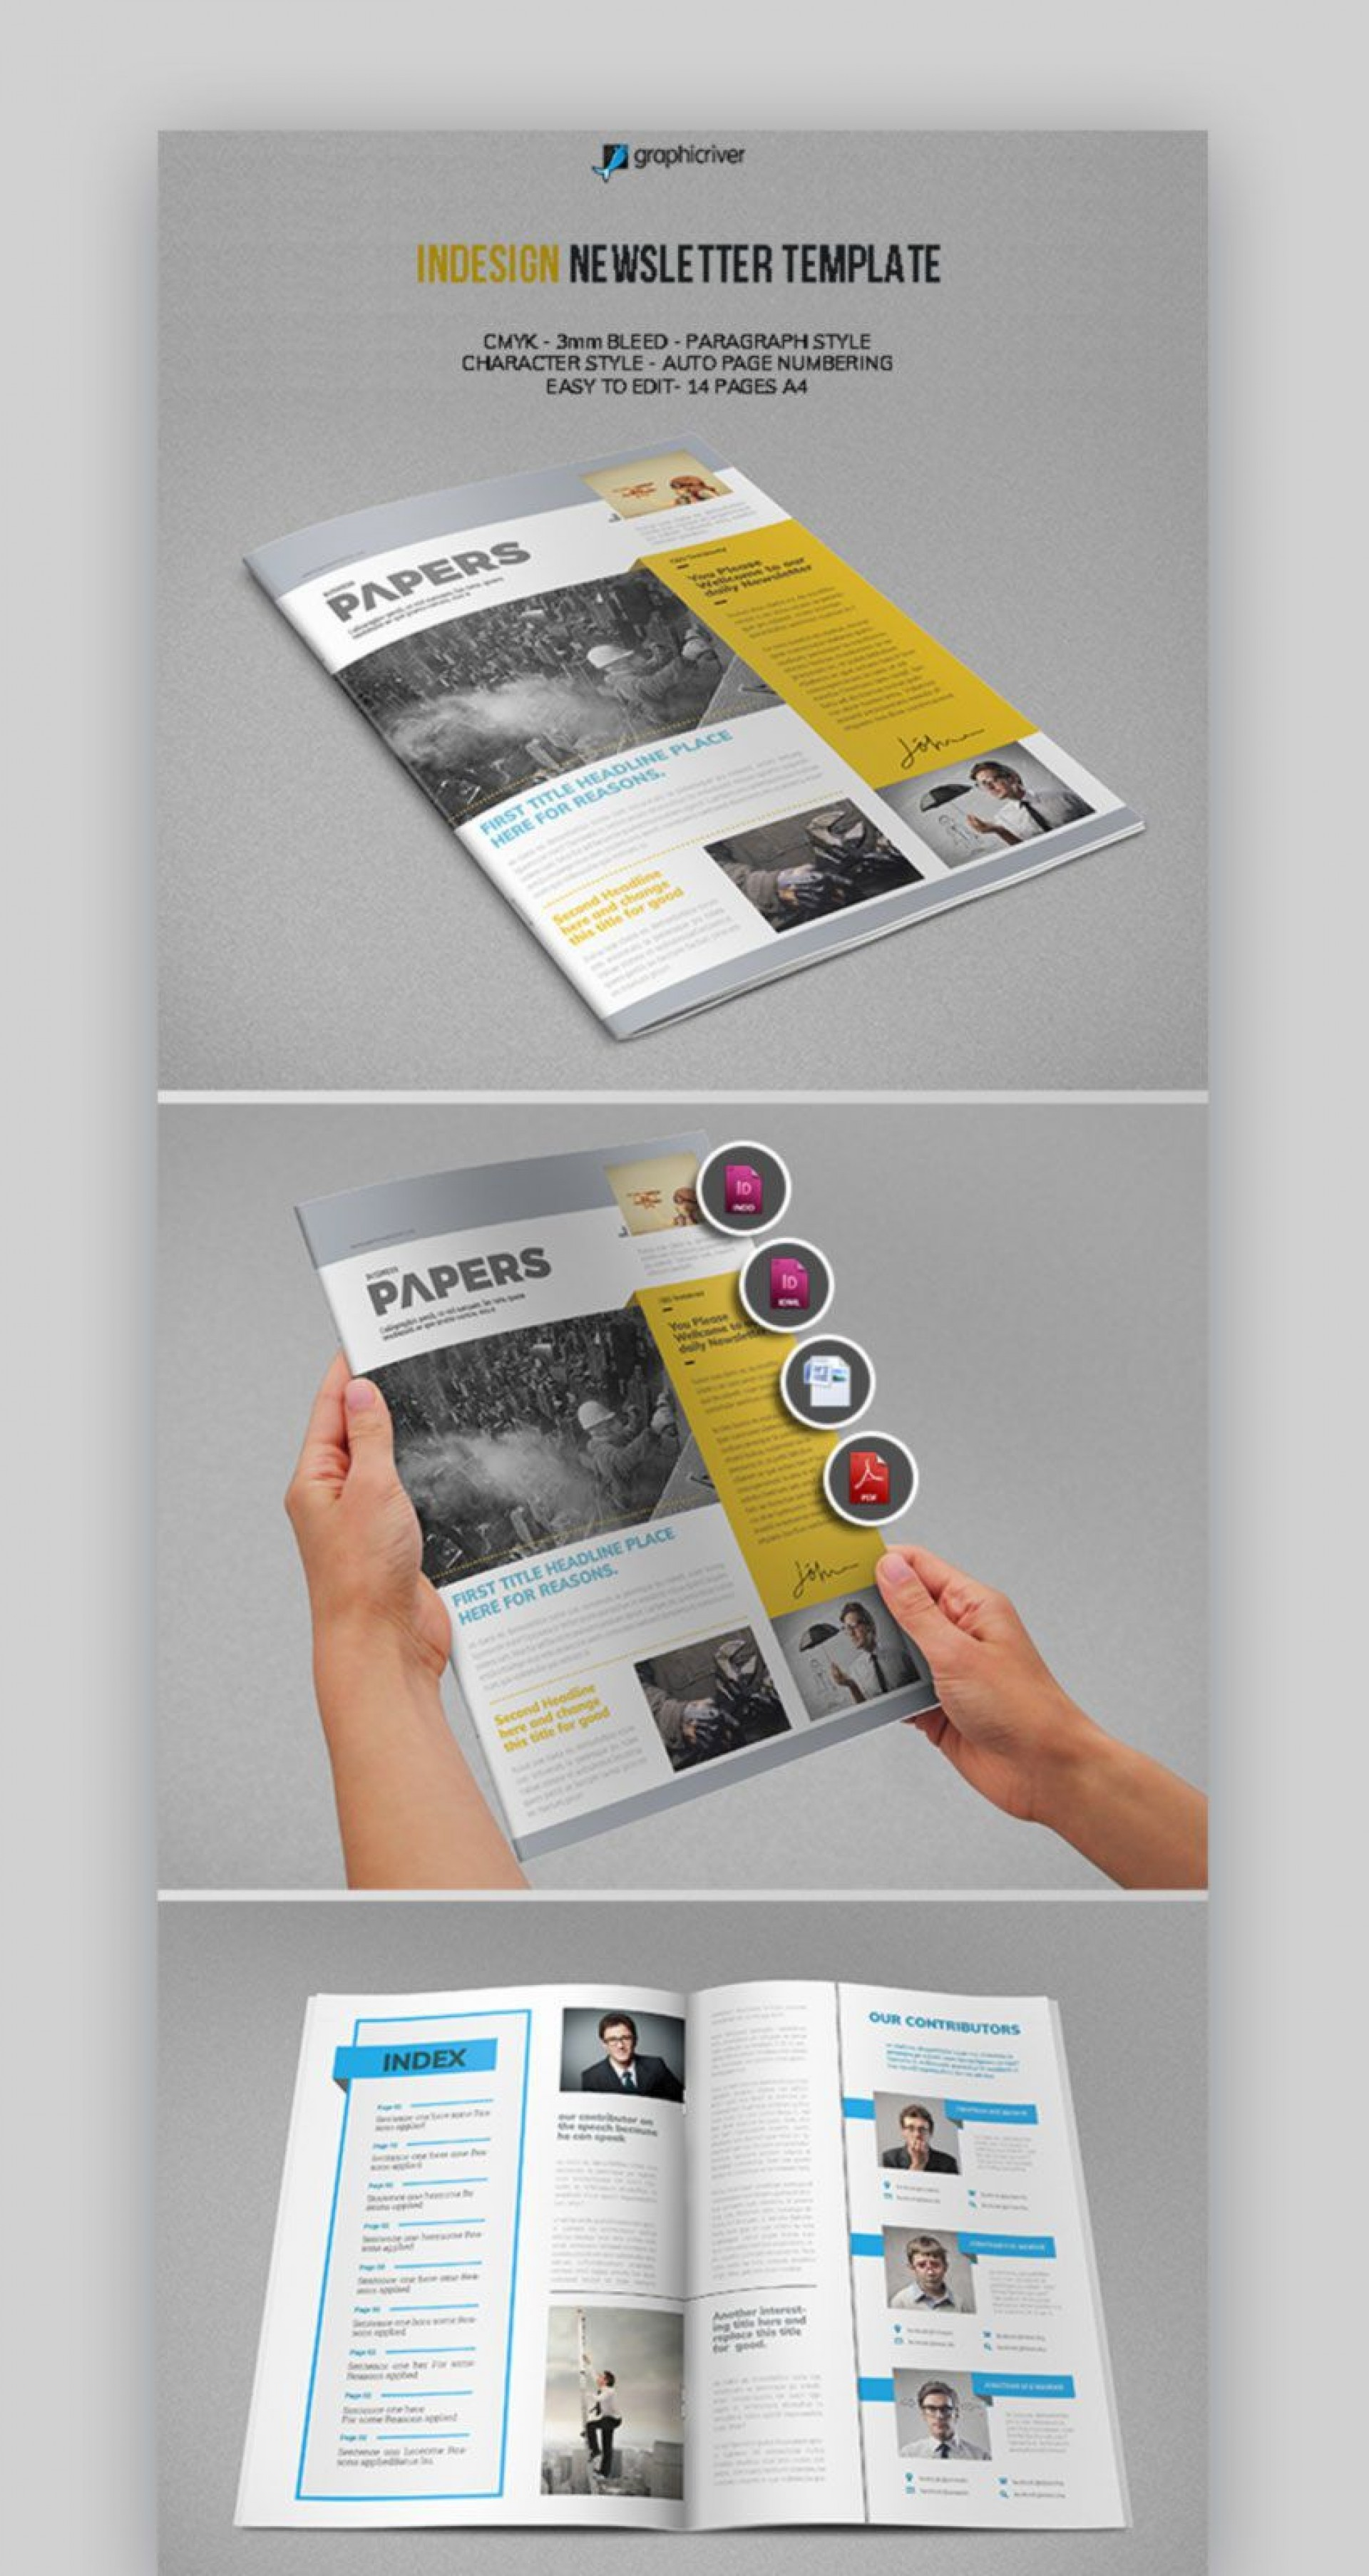 008 Stupendou Word Newsletter Template Free Download Image  Document M 2007 Design1920